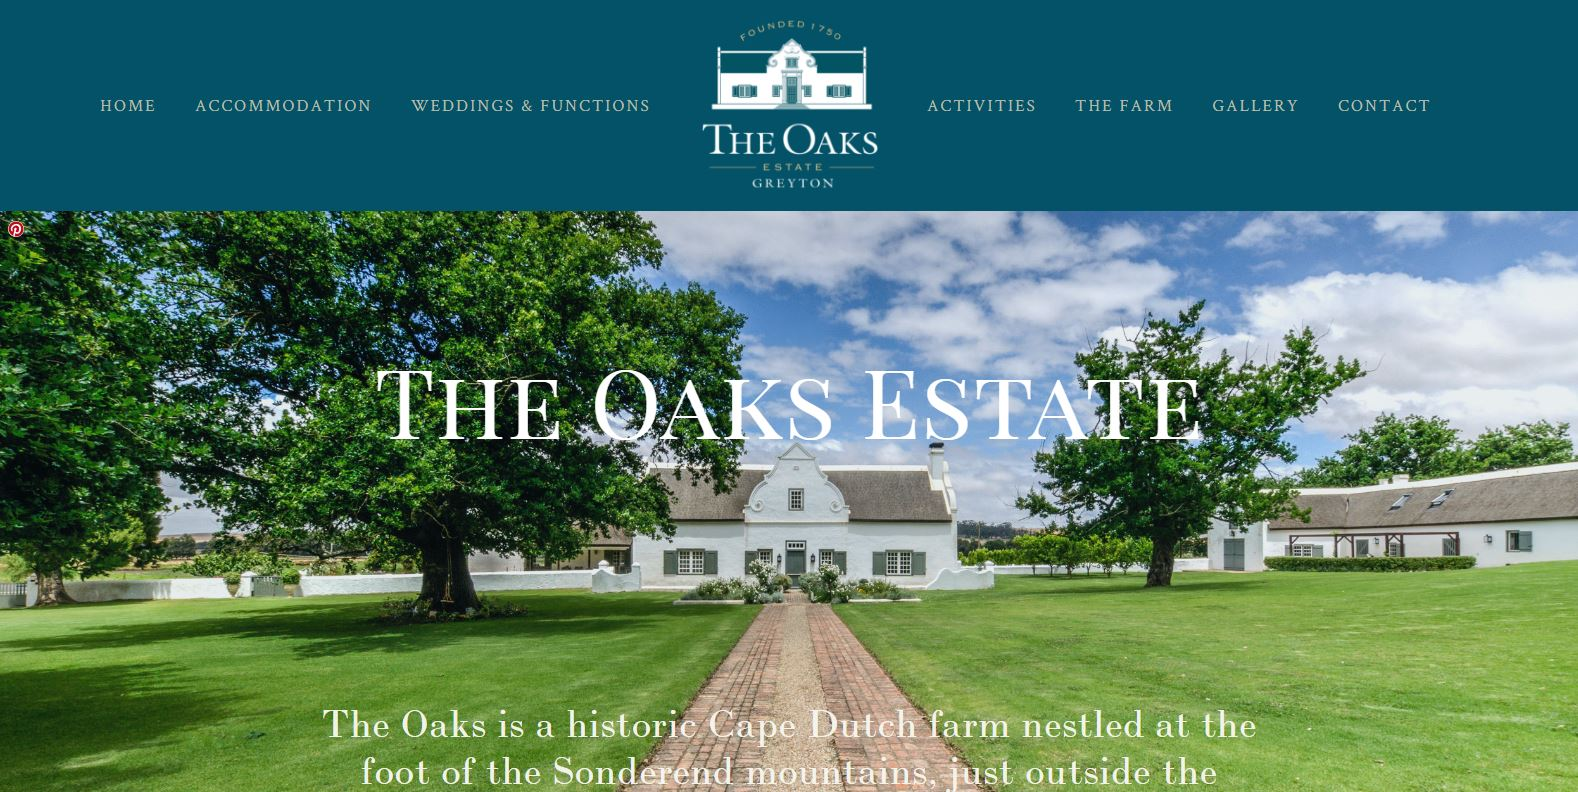 the oaks estate salamander publishing.JPG